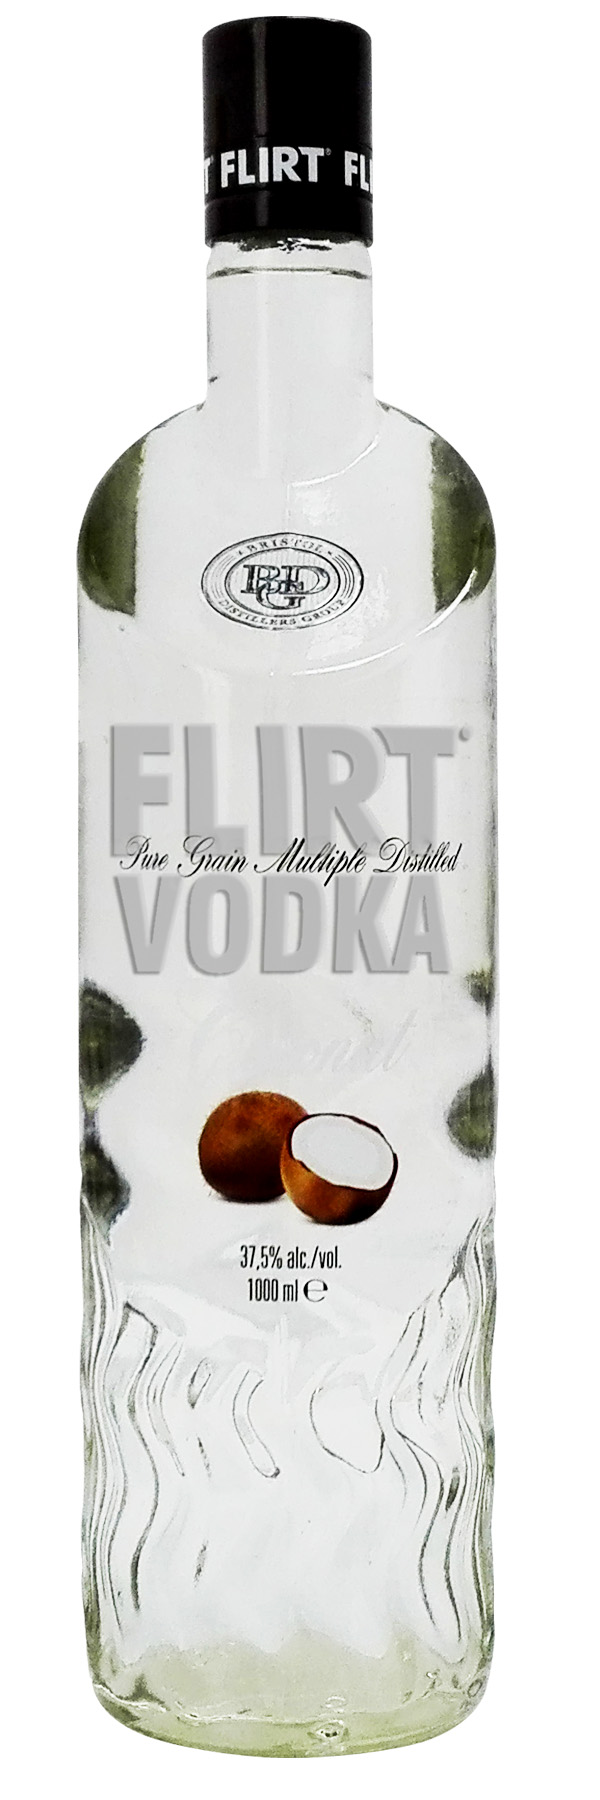 flirt vodka price Flirt original vodka buy the best quality bulgaria vodka from hemiucom best price, best quality and fast delivery to your doorstep.